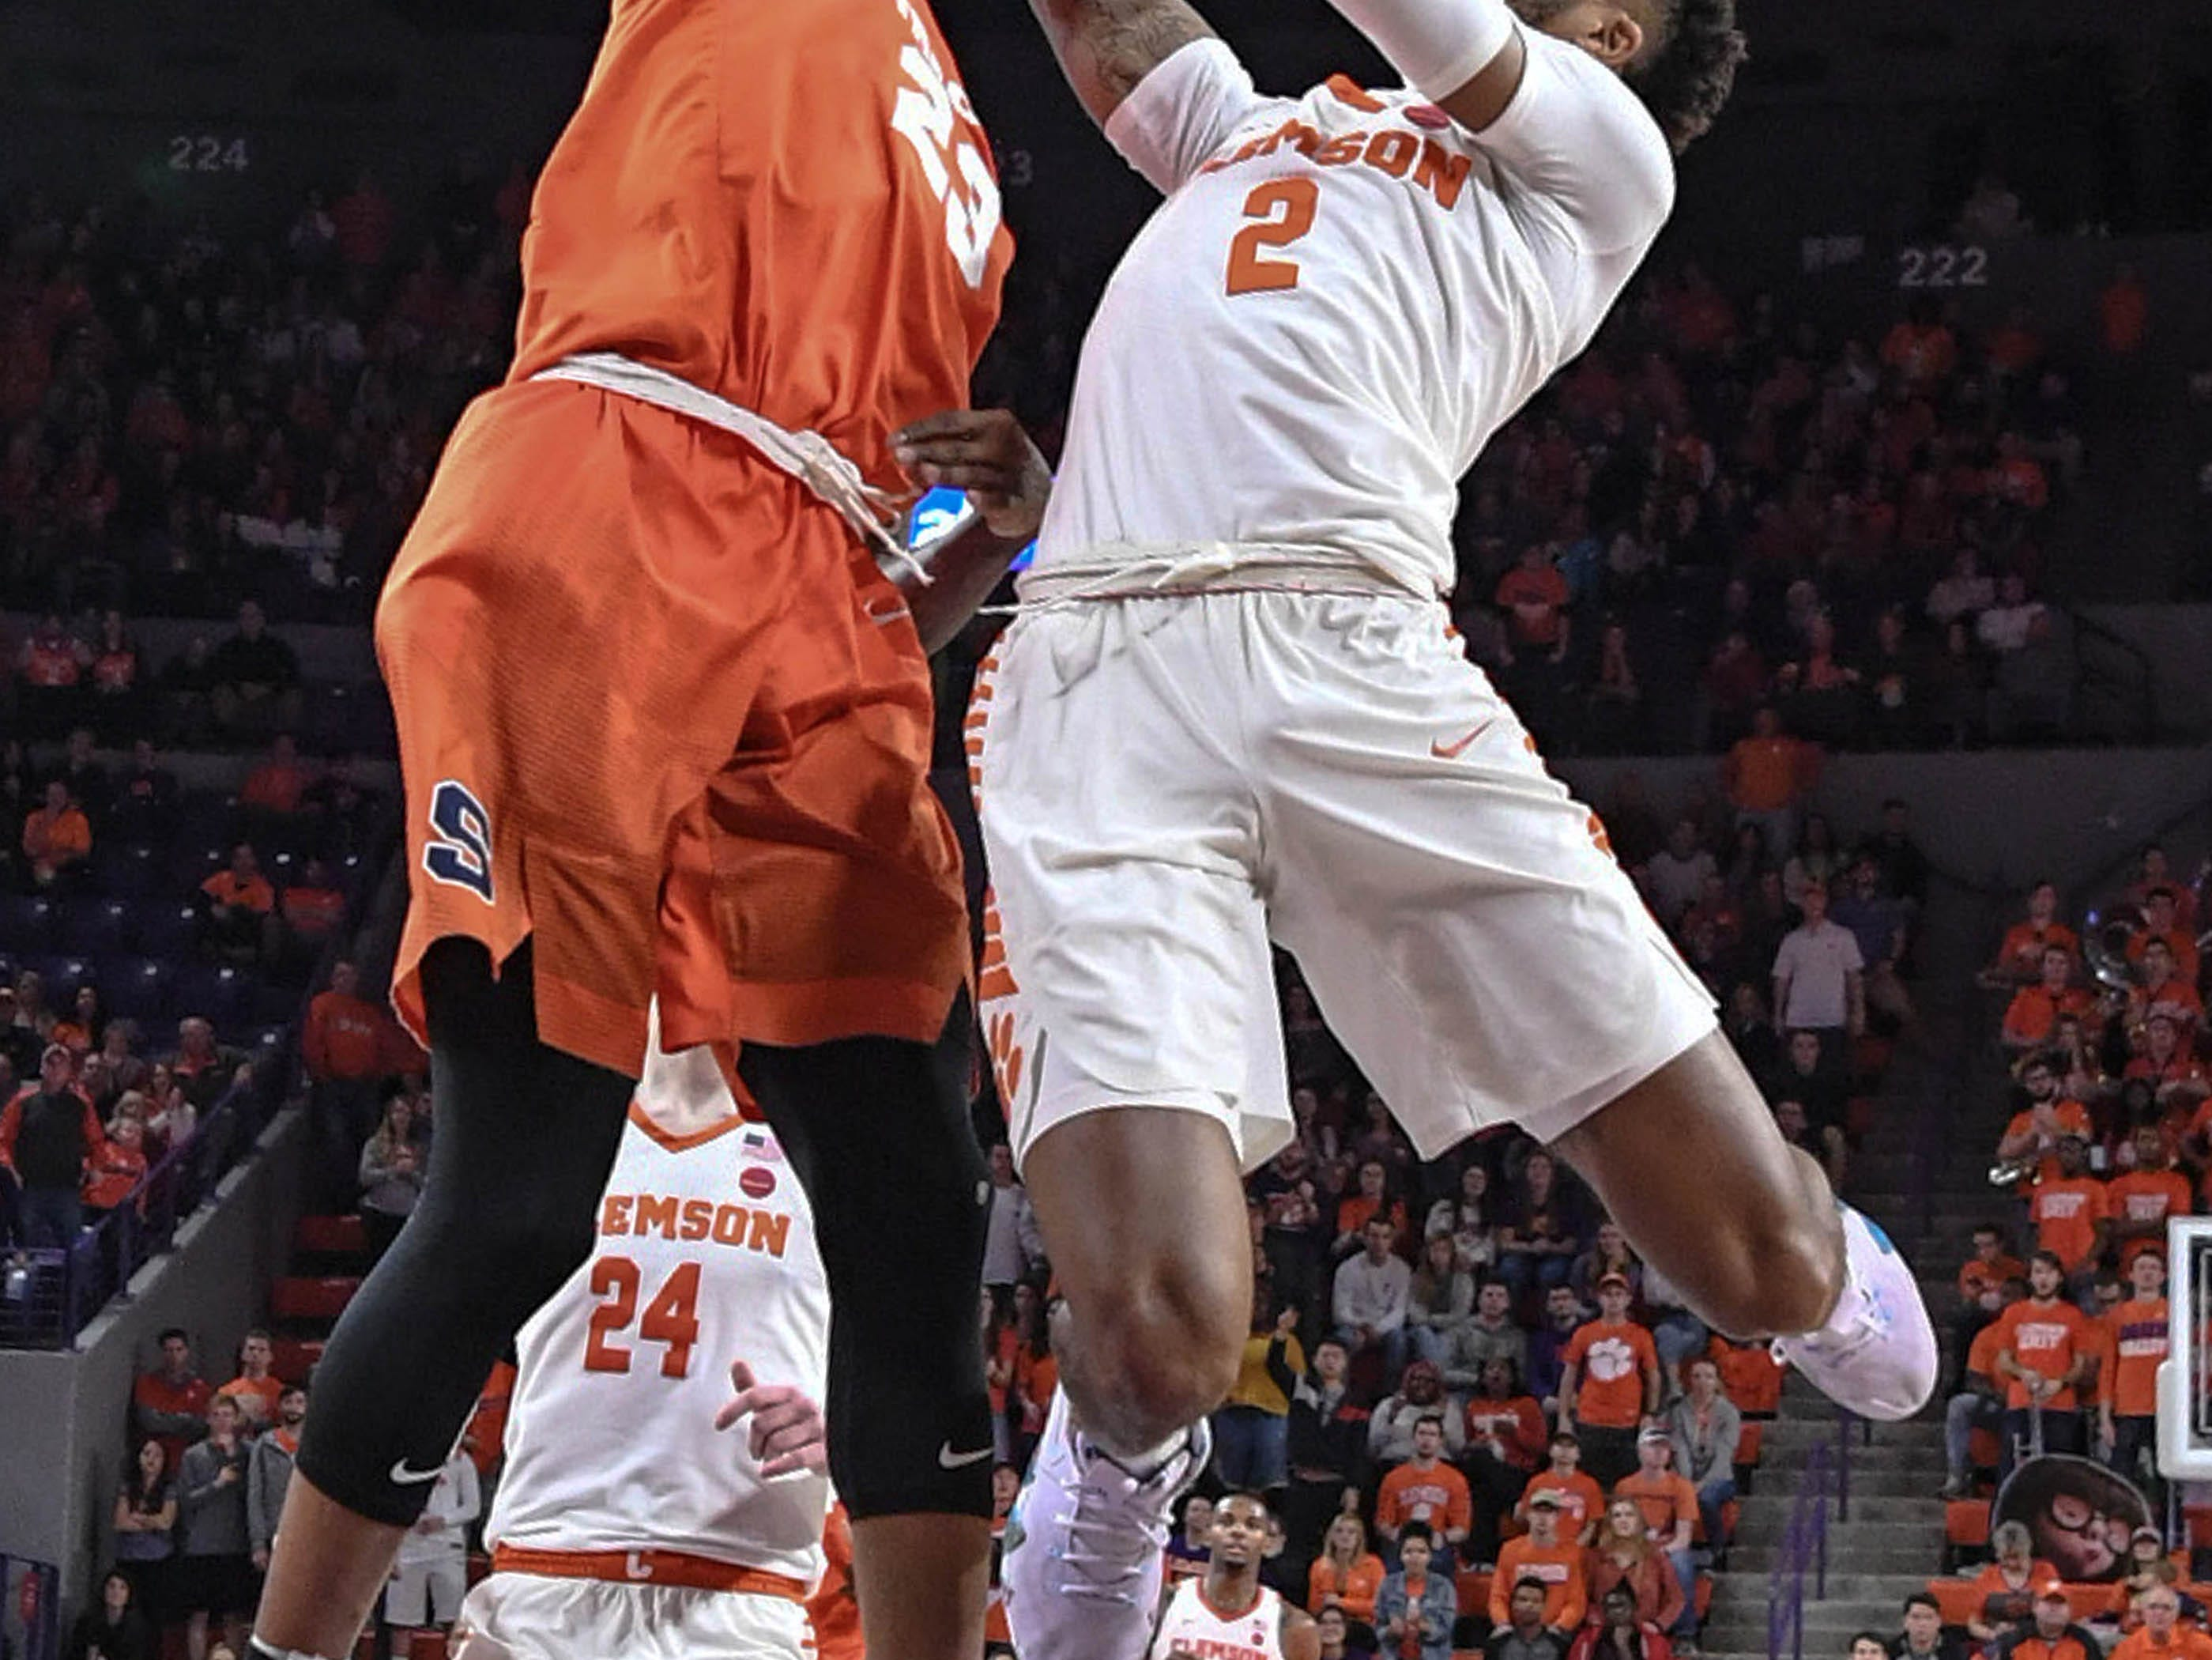 Clemson guard Marcquise Reed (2) shoots near Syracuse guard Frank Howard(23) during the second half in Littlejohn Coliseum in Clemson Saturday, March 9, 2019.